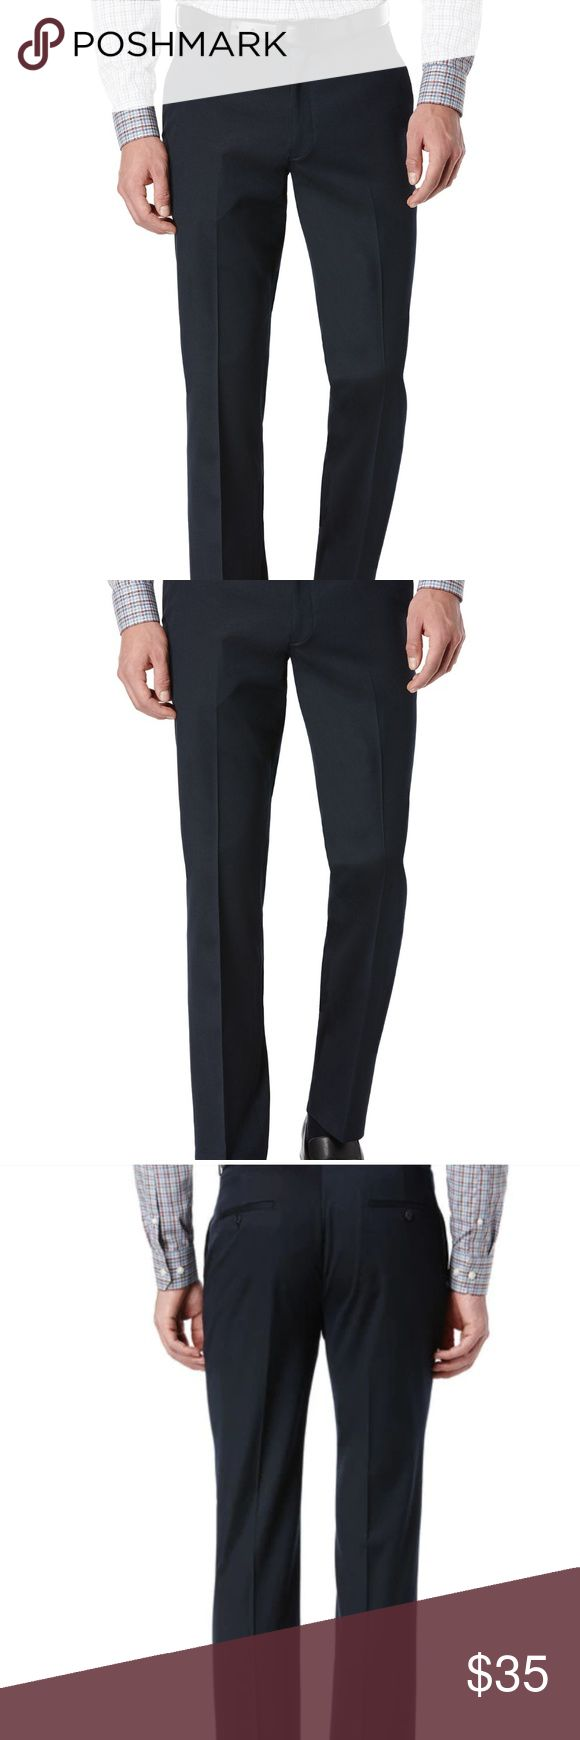 Perry Ellis Slim Fit Dress Pants Mens 36 x 30 New with Tags Men's Perry Ellis Dress Pants Wrinkle Resistant  Flat Front Navy Blue Textured Size 36 x 30 Pockets 100% Polyester New condition Nonsmoking home 042354104744 Perry Ellis Pants Dress